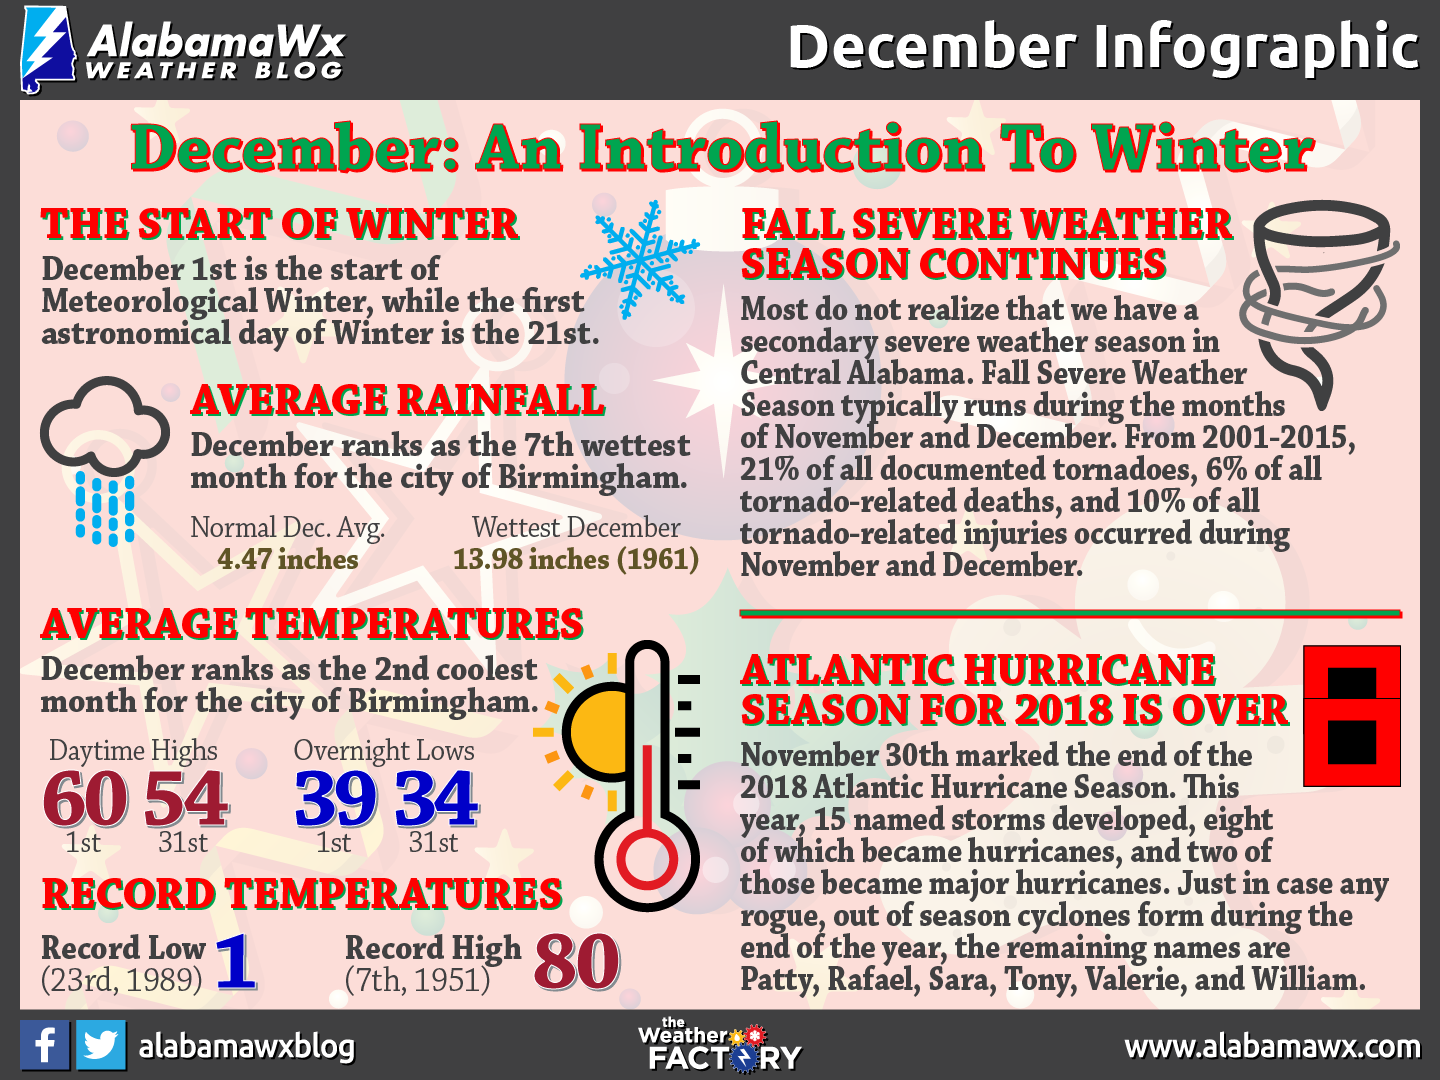 December Infographic by AlabamaWx's Scott Martin